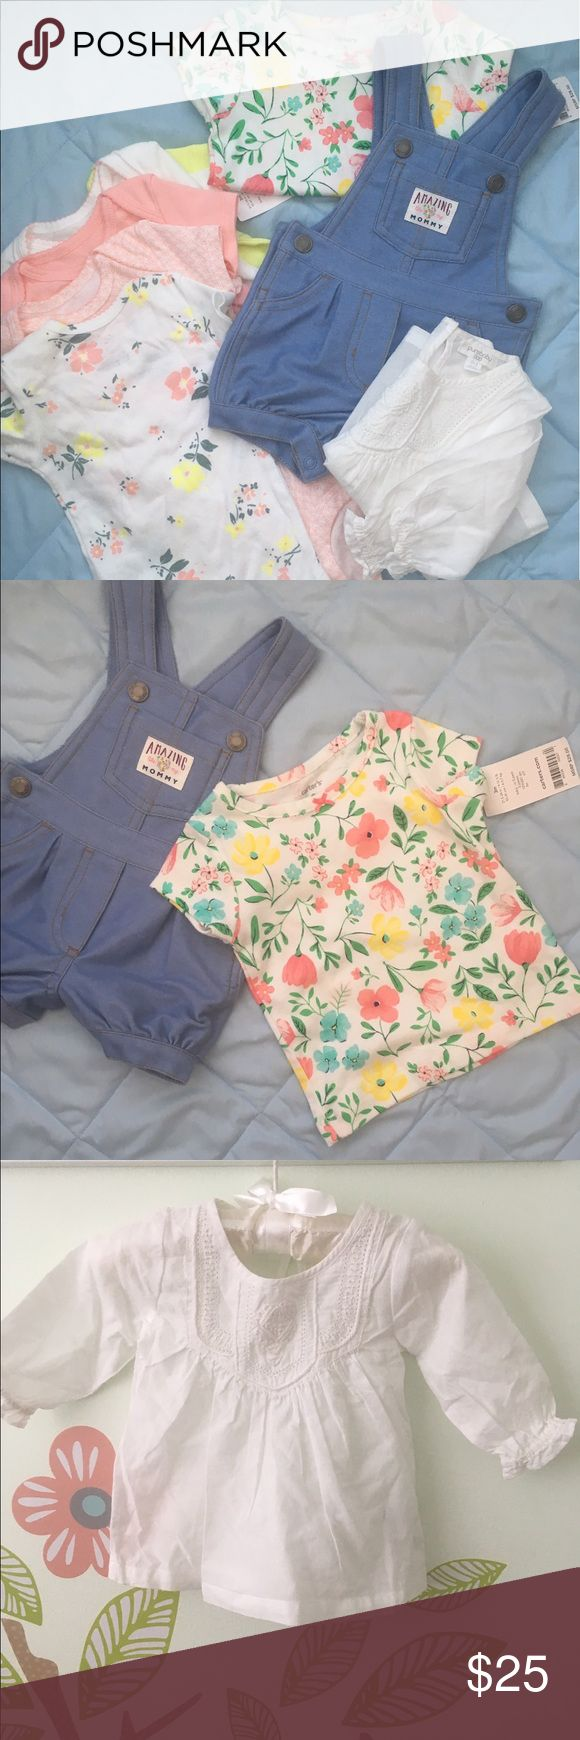 8 PIECE BABY GIRL  BUNDLE CARTER'S Short overalls -57%cotton /36% polyester - includes original tags . PUREBABY White long sleeved top- 100%organic cotton -no tags . CARTER'S 5 set onesies -  100% cotton with original tags . Make me an offer :) Matching Sets